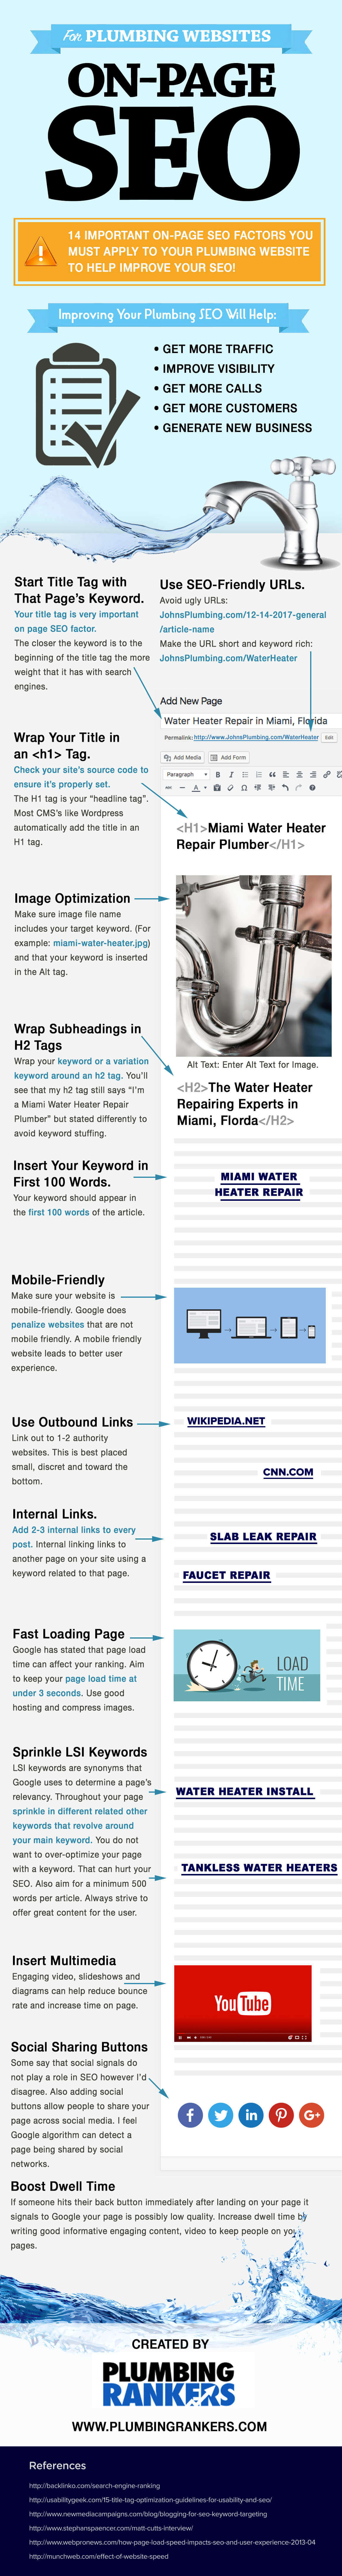 on-page-seo-for-plumbers-infographic